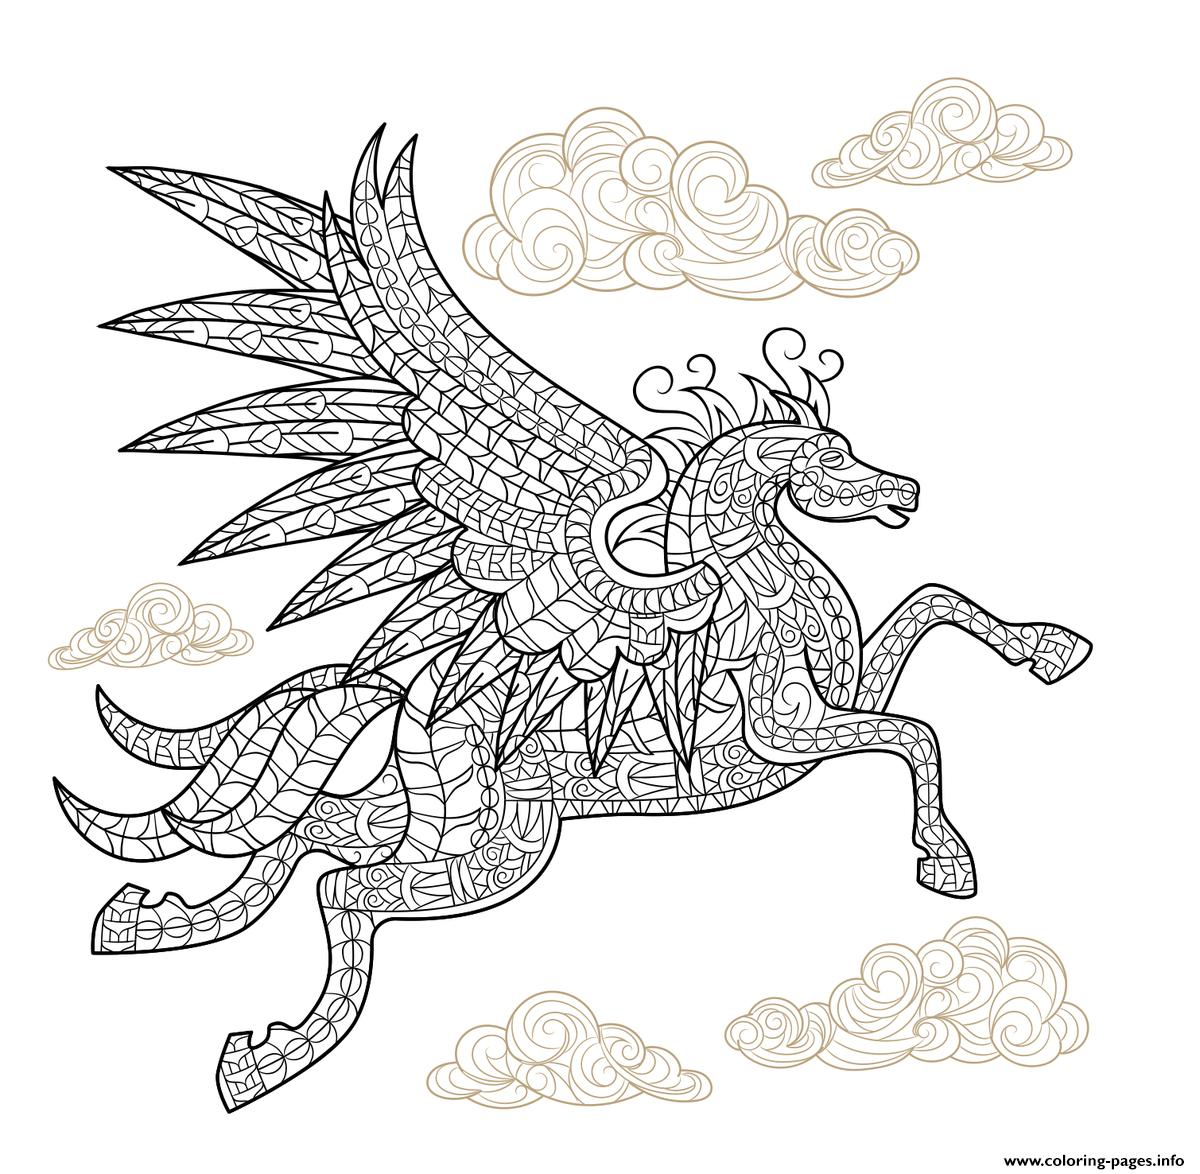 hard horse coloring pages - photo#28